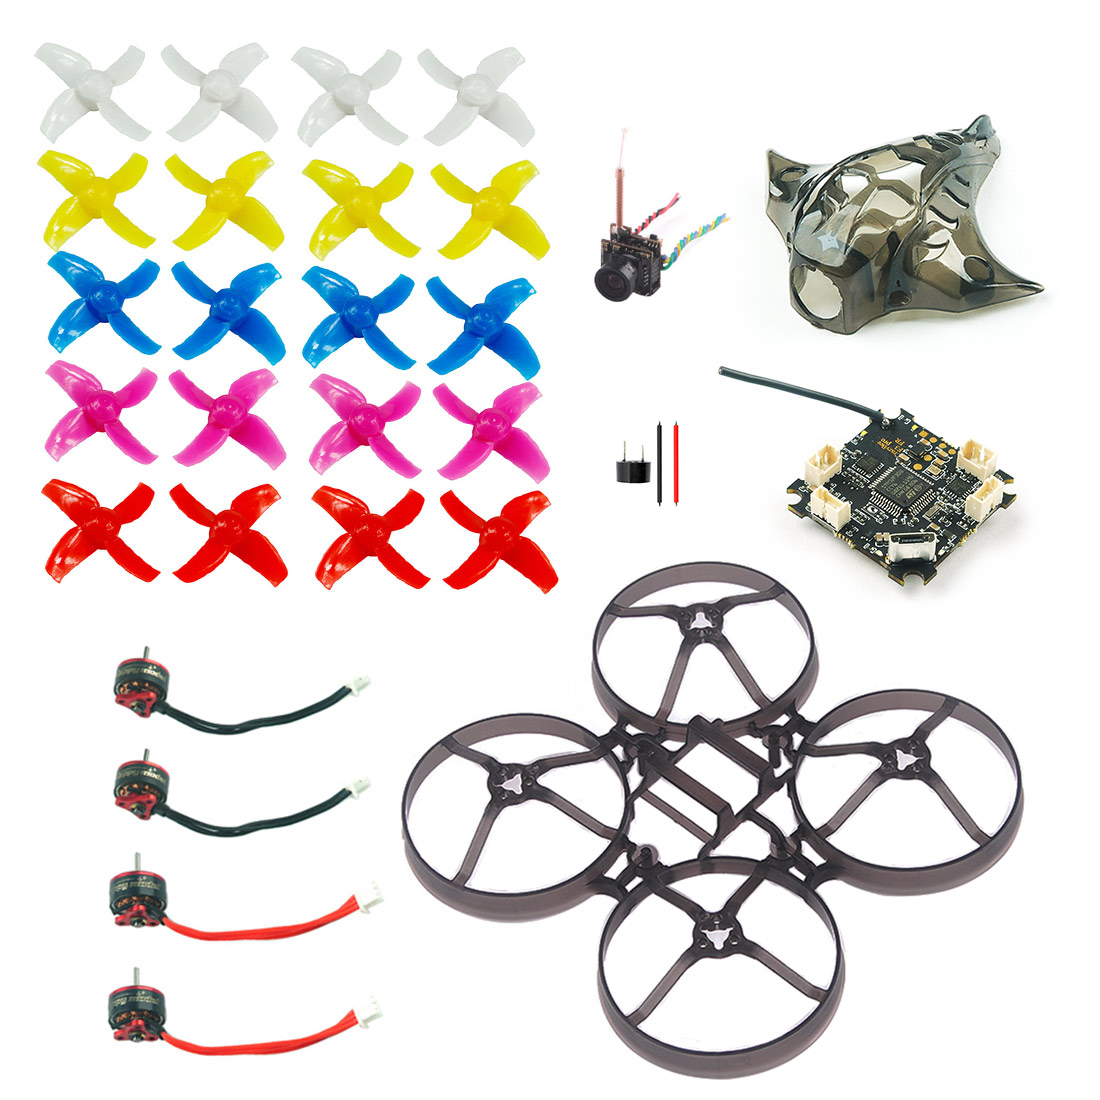 Crazybee F3 Pro FC Mobula7 V2 Frame Canopy SE0802 1 2S Brushless Motor 40mm Propellers Replacement